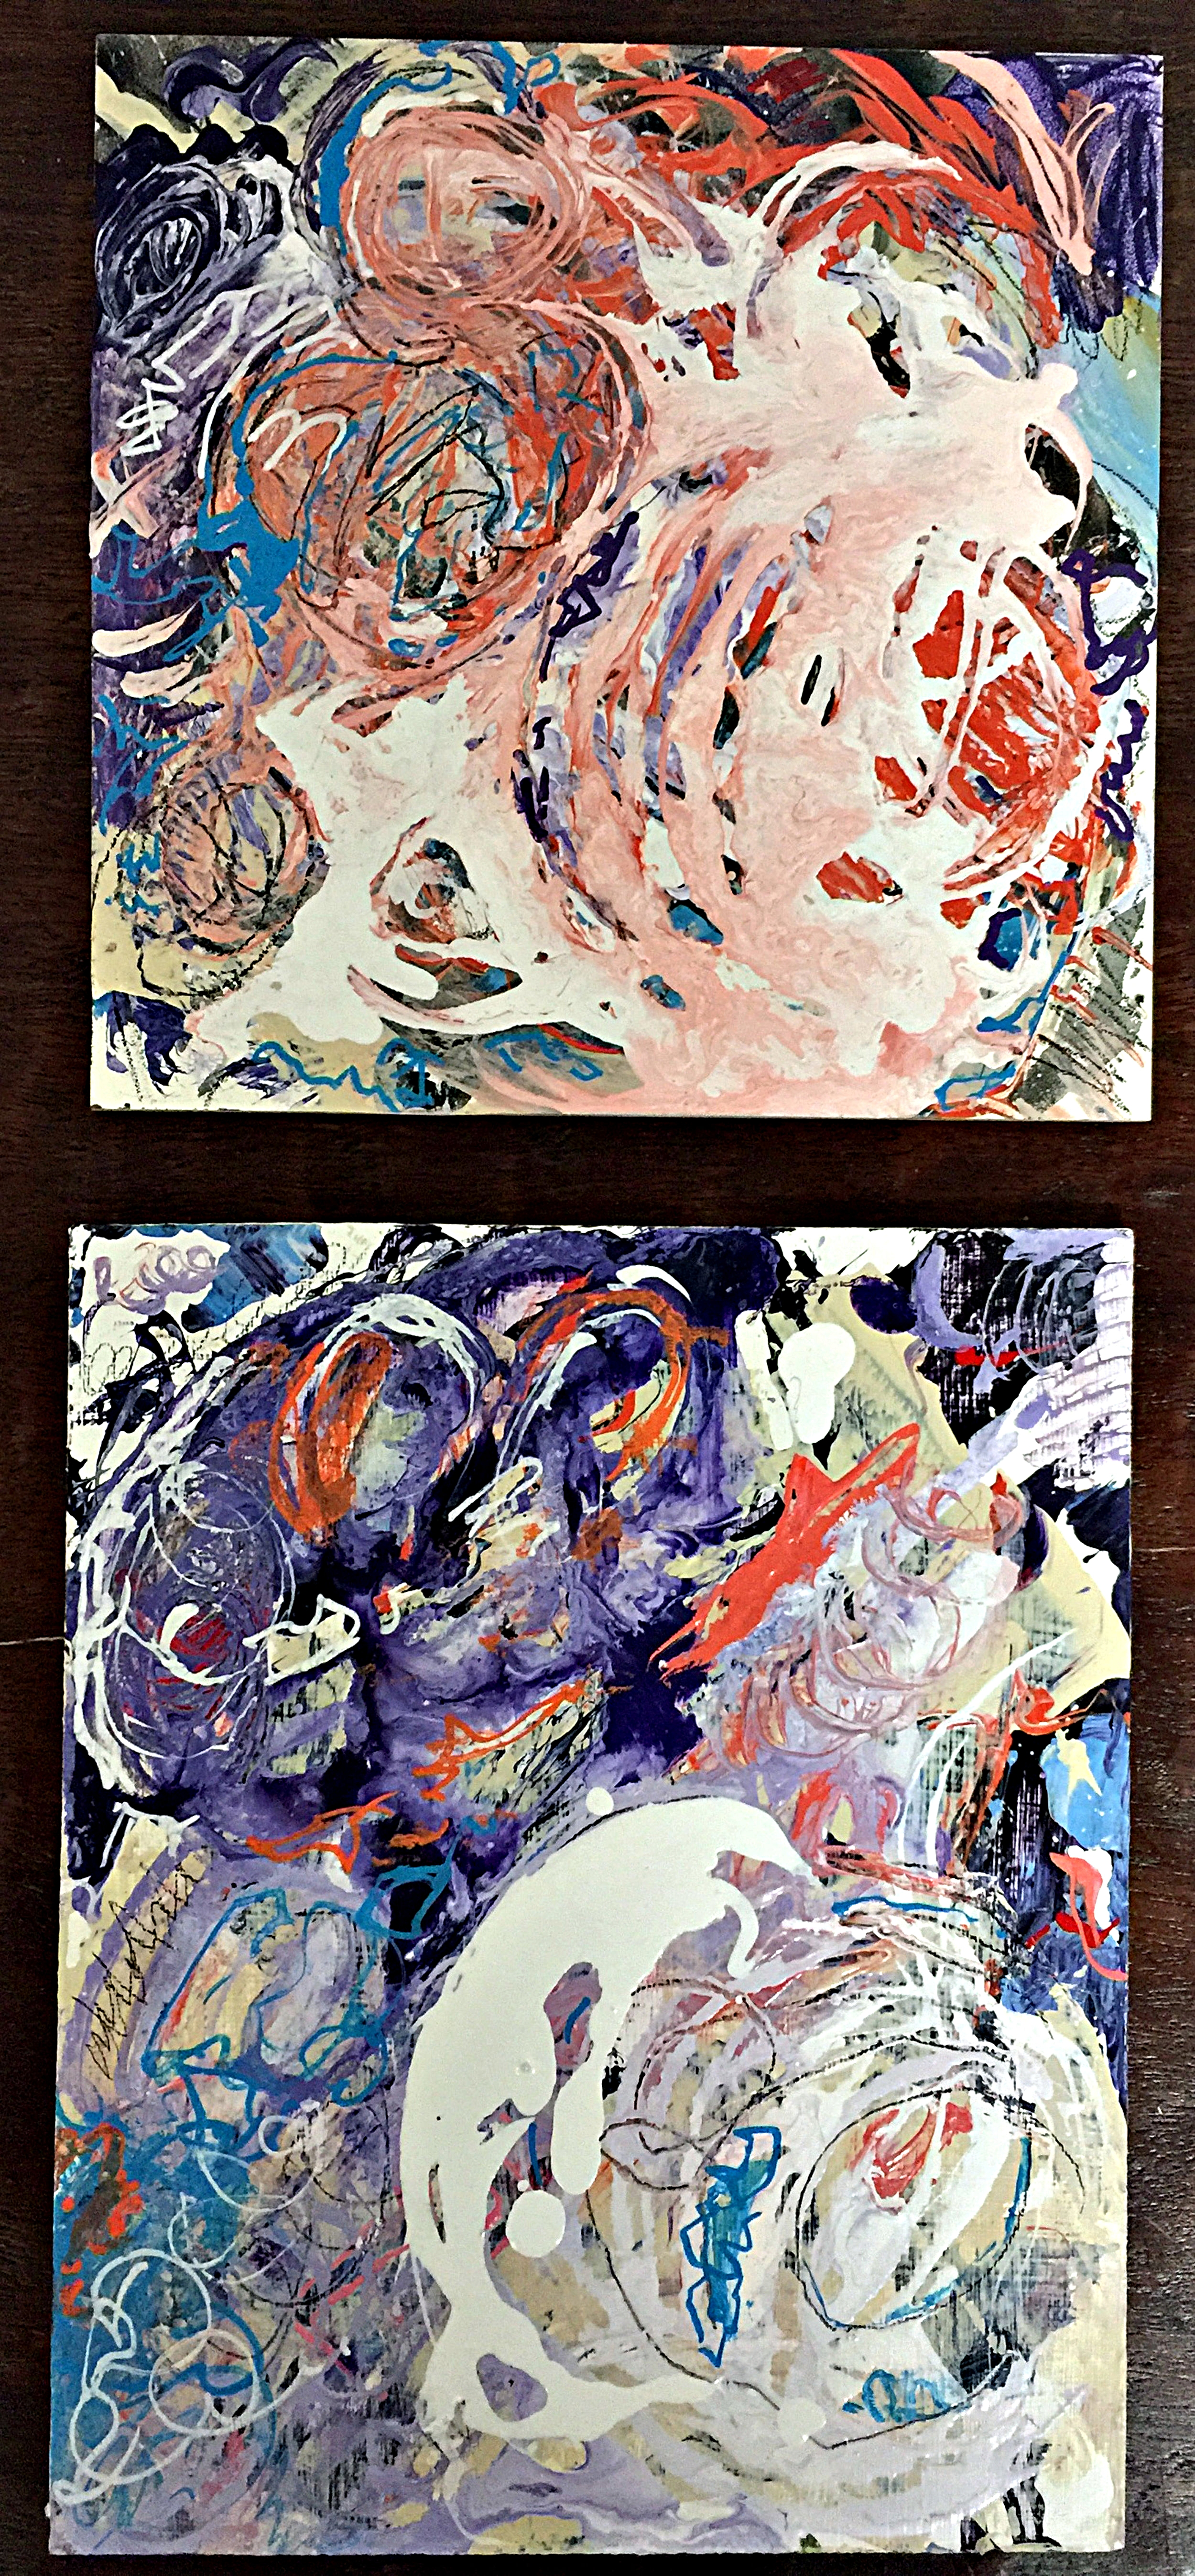 Diptych: Morning Dew and All My Days